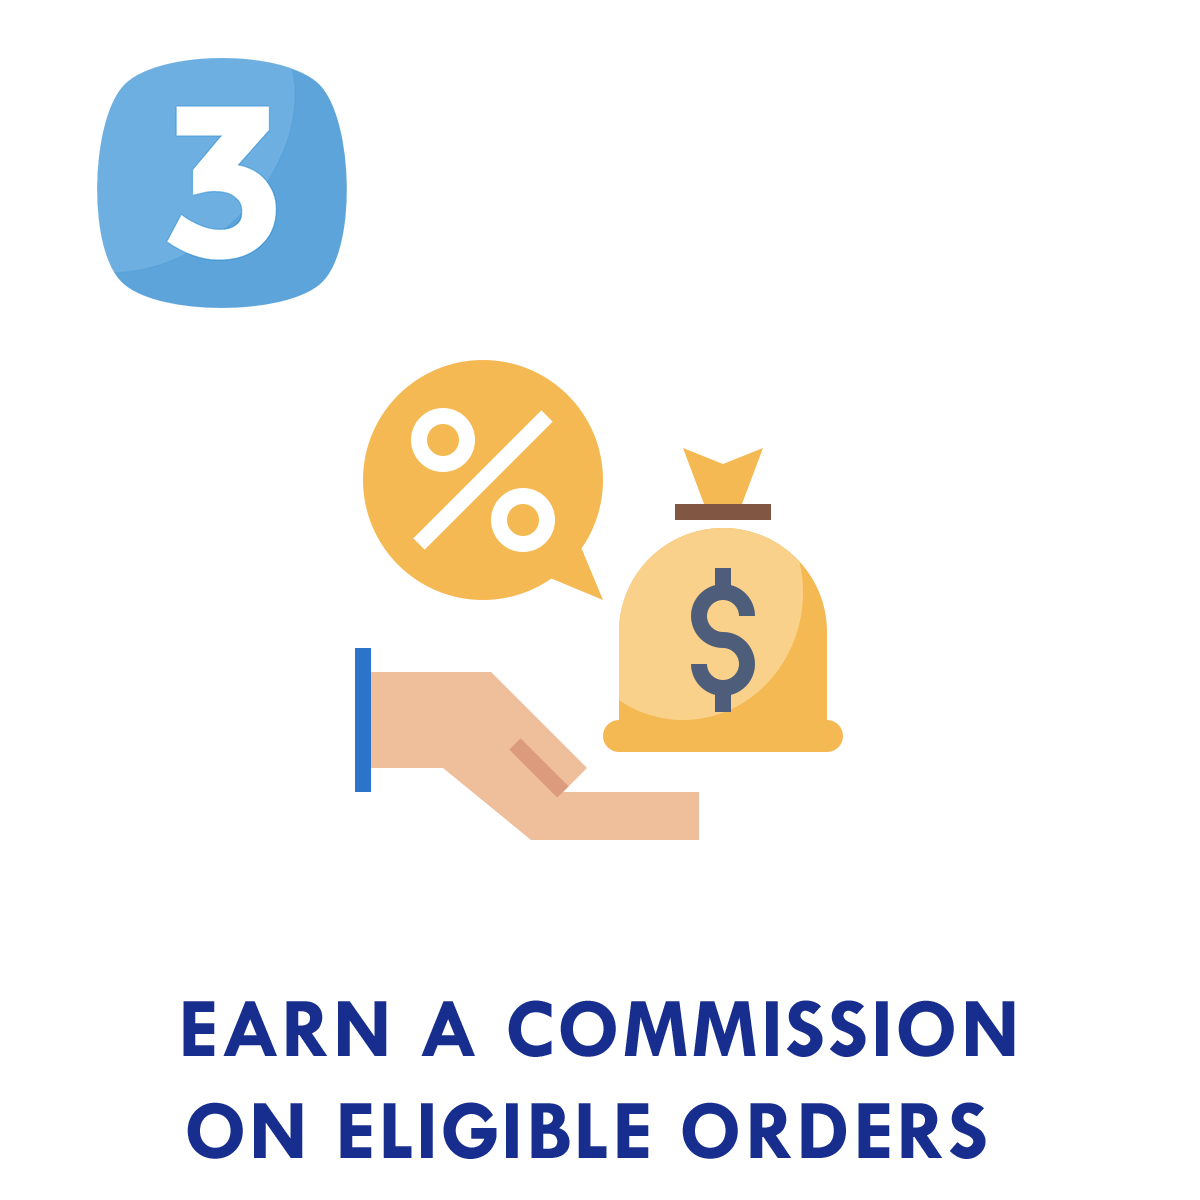 Step 3: Earn a commission on every order placed from your link